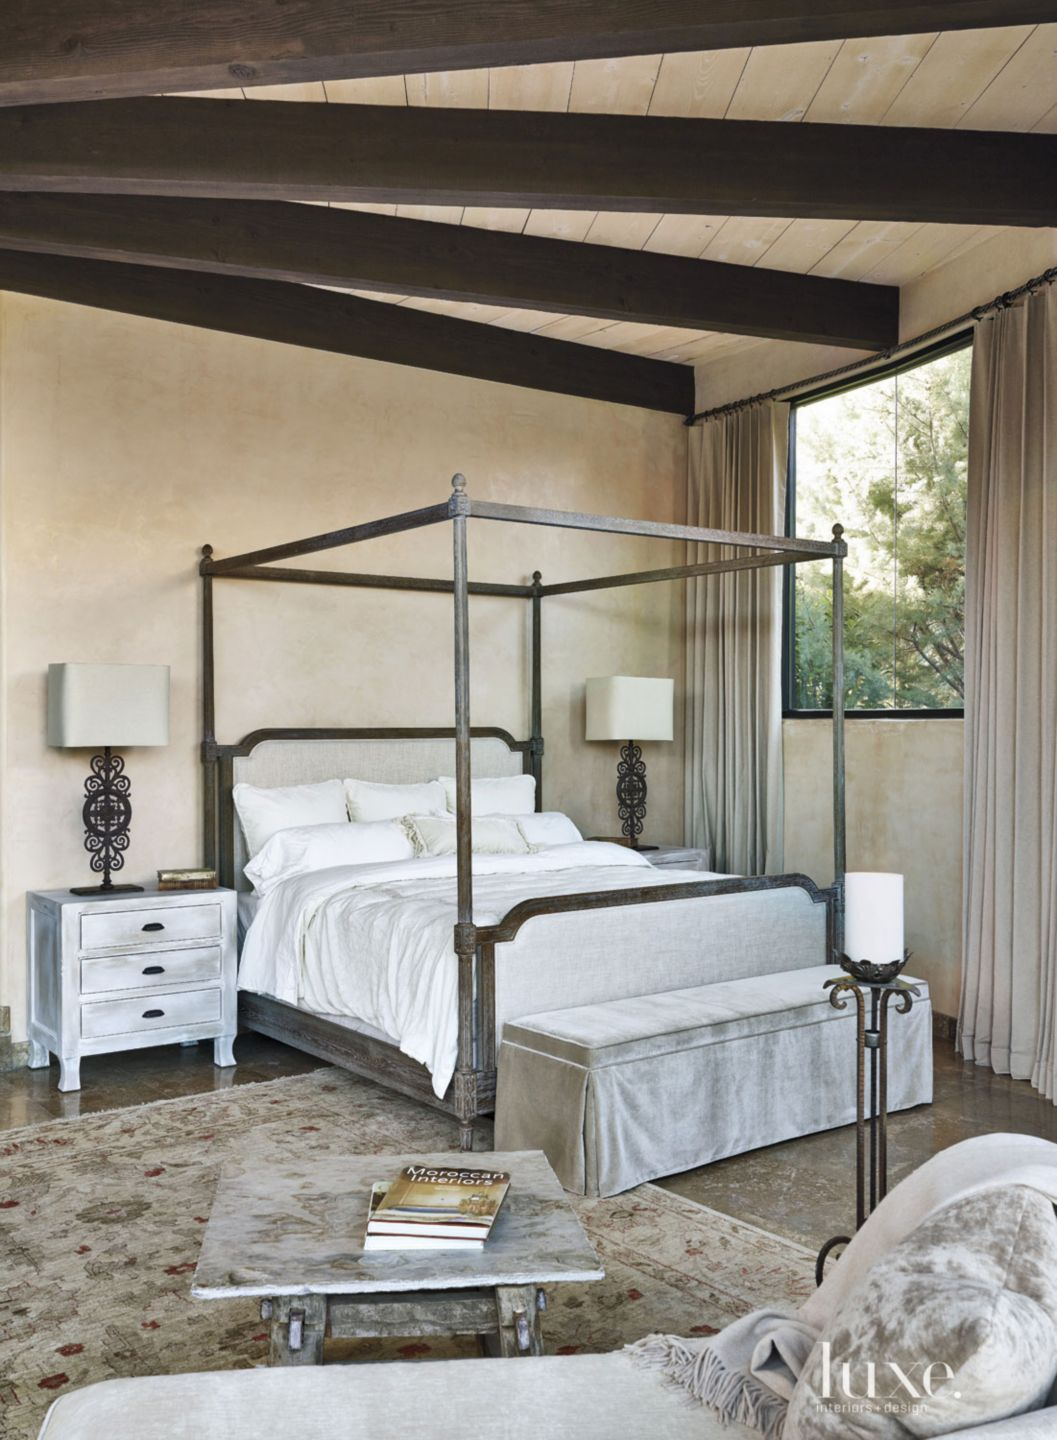 Mediterranean Cream Master Bedroom with Exposed Beams